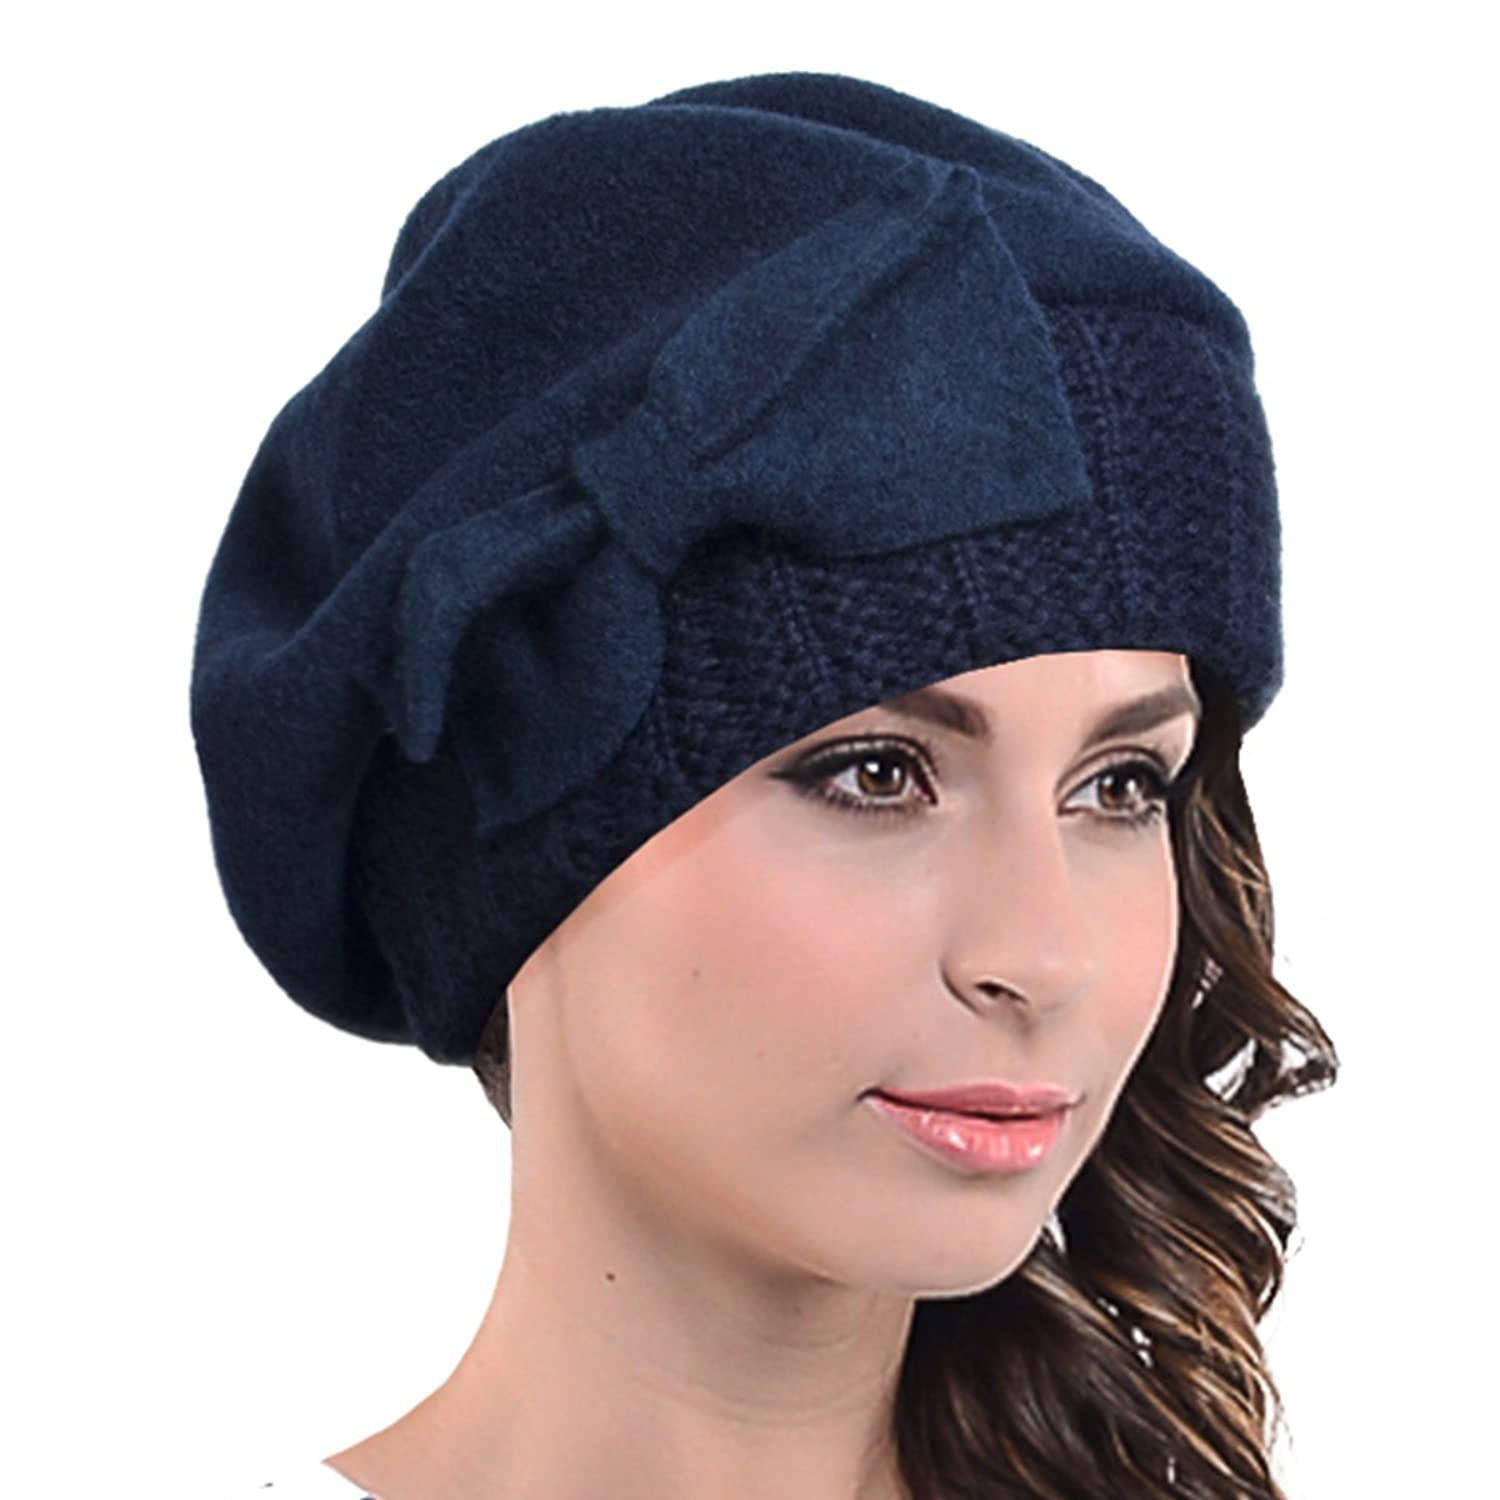 Agent Peggy Carter Costume, Dress, Hats Lady French Beret Wool Beret Chic Beanie Winter Hat Jf-br034 $21.99 AT vintagedancer.com